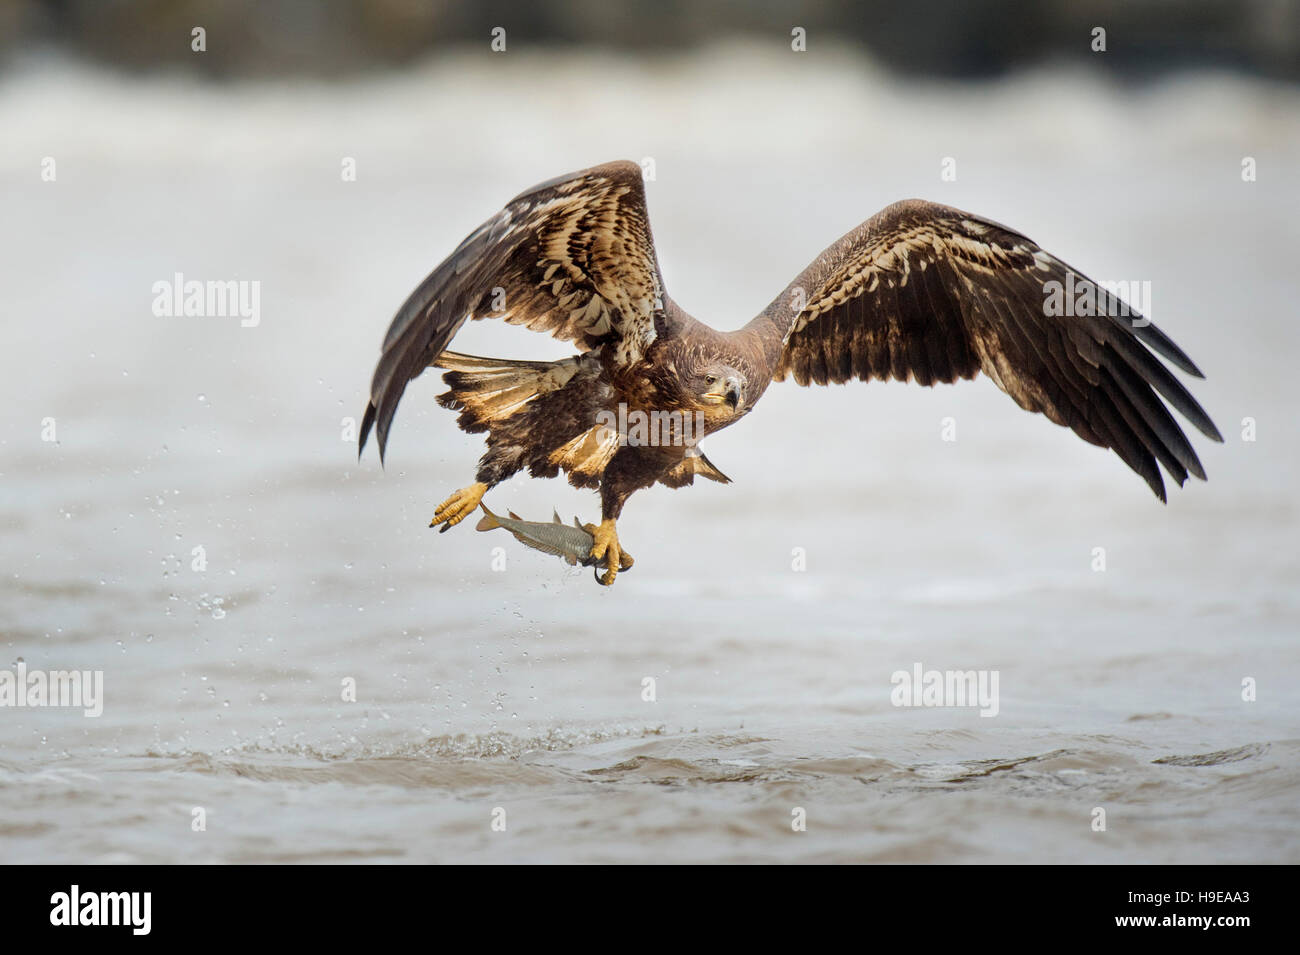 A juvenile Bald Eagle flies low over the water just after grabbing a fish in its large yellow talons. Stock Photo